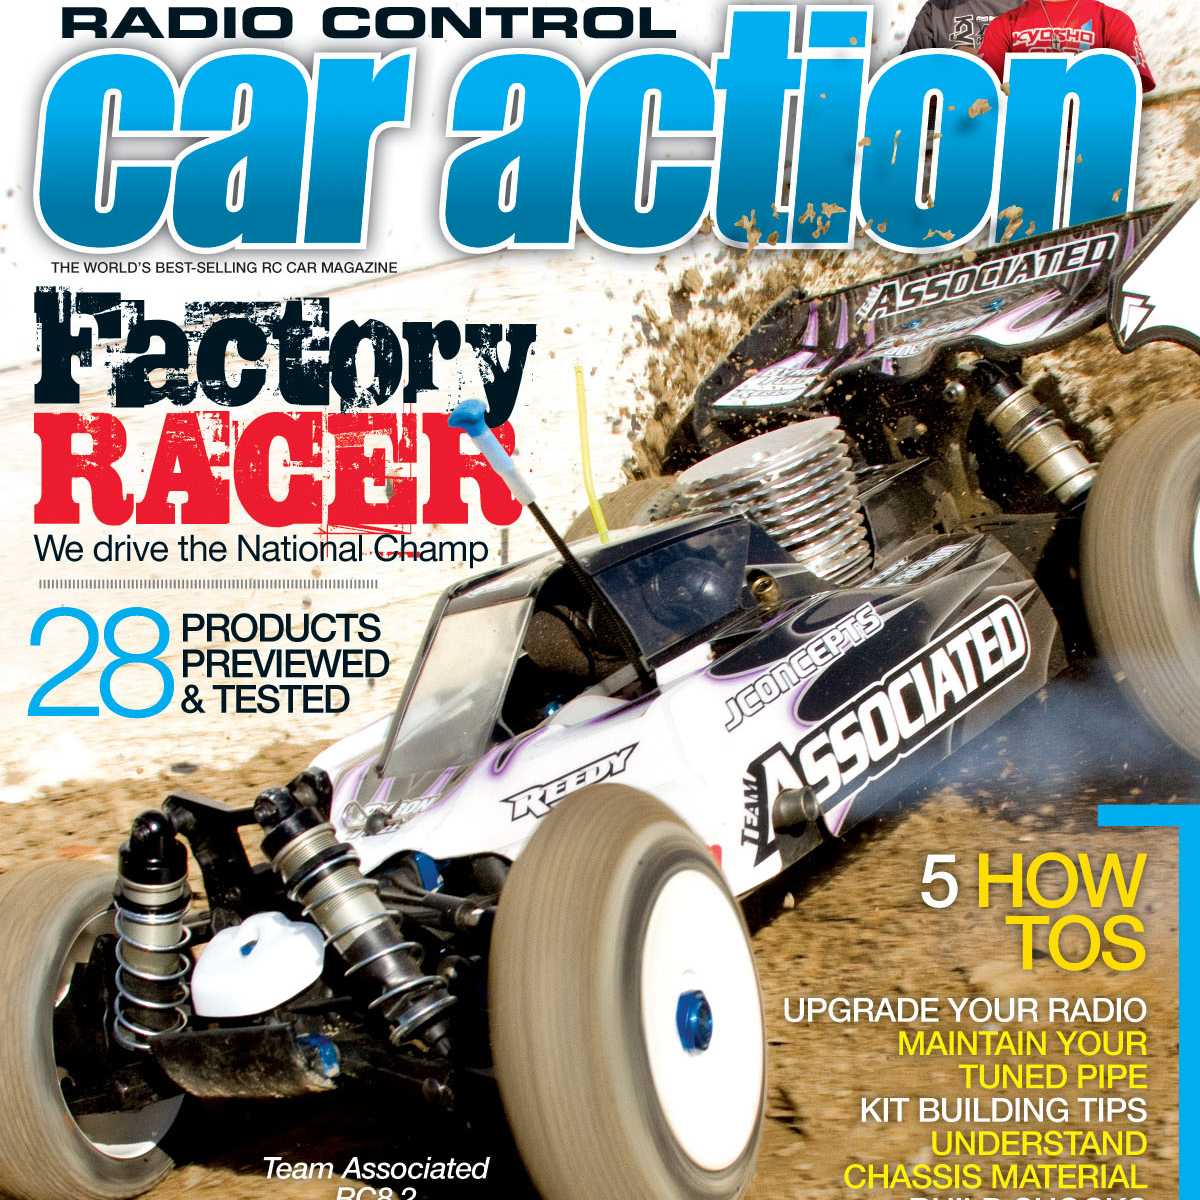 Rc Car Action >> Radio Control Car Action March 2012 Magazine On Sale Now Check Out